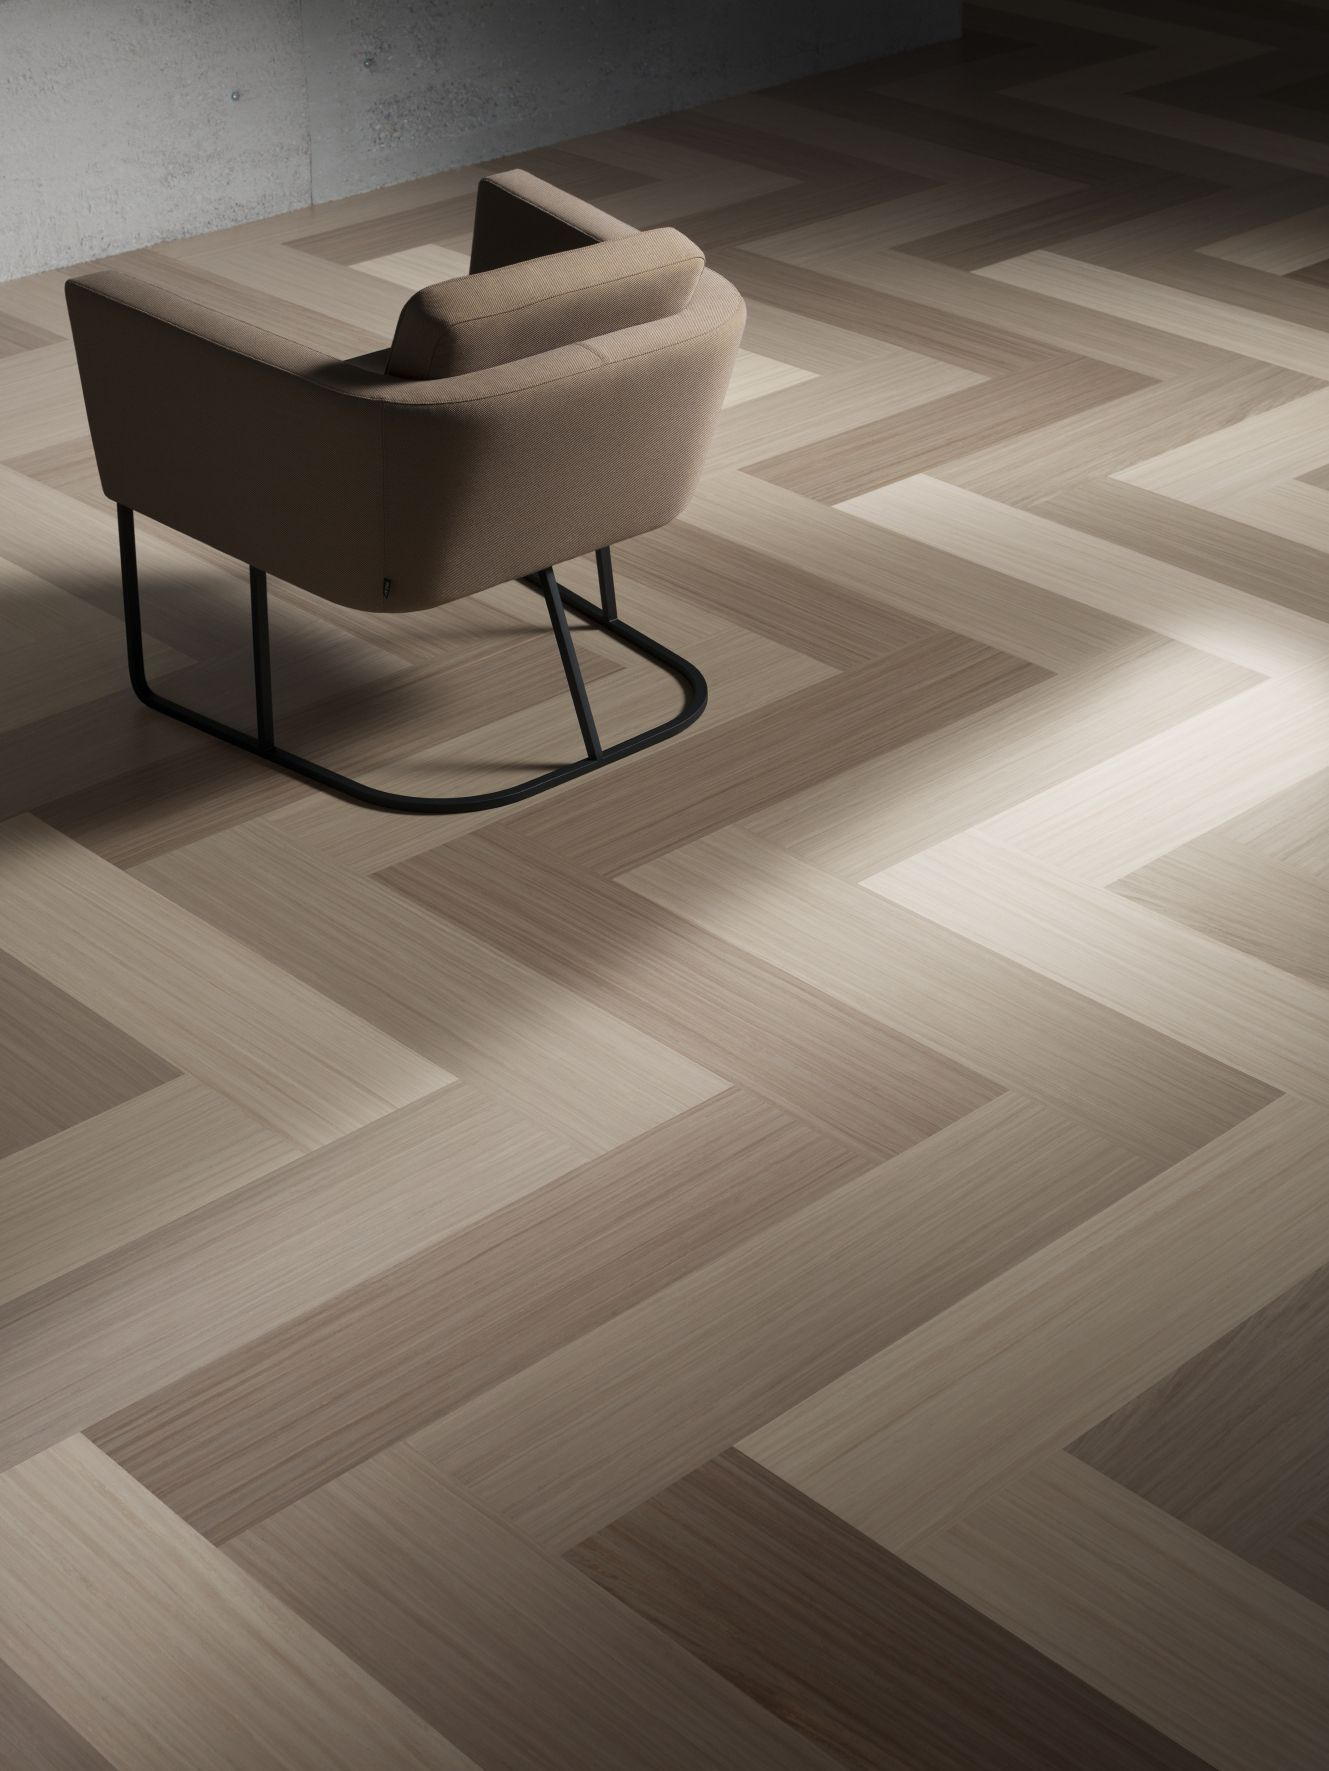 Forbo Modular tile in Striato 5230, 5235 & 5217 - 100 X 25 planks - Forbo Modular, Winner of ADEX platinum award 2015. 59 colours and 4 coordinated sizes of planks and squares